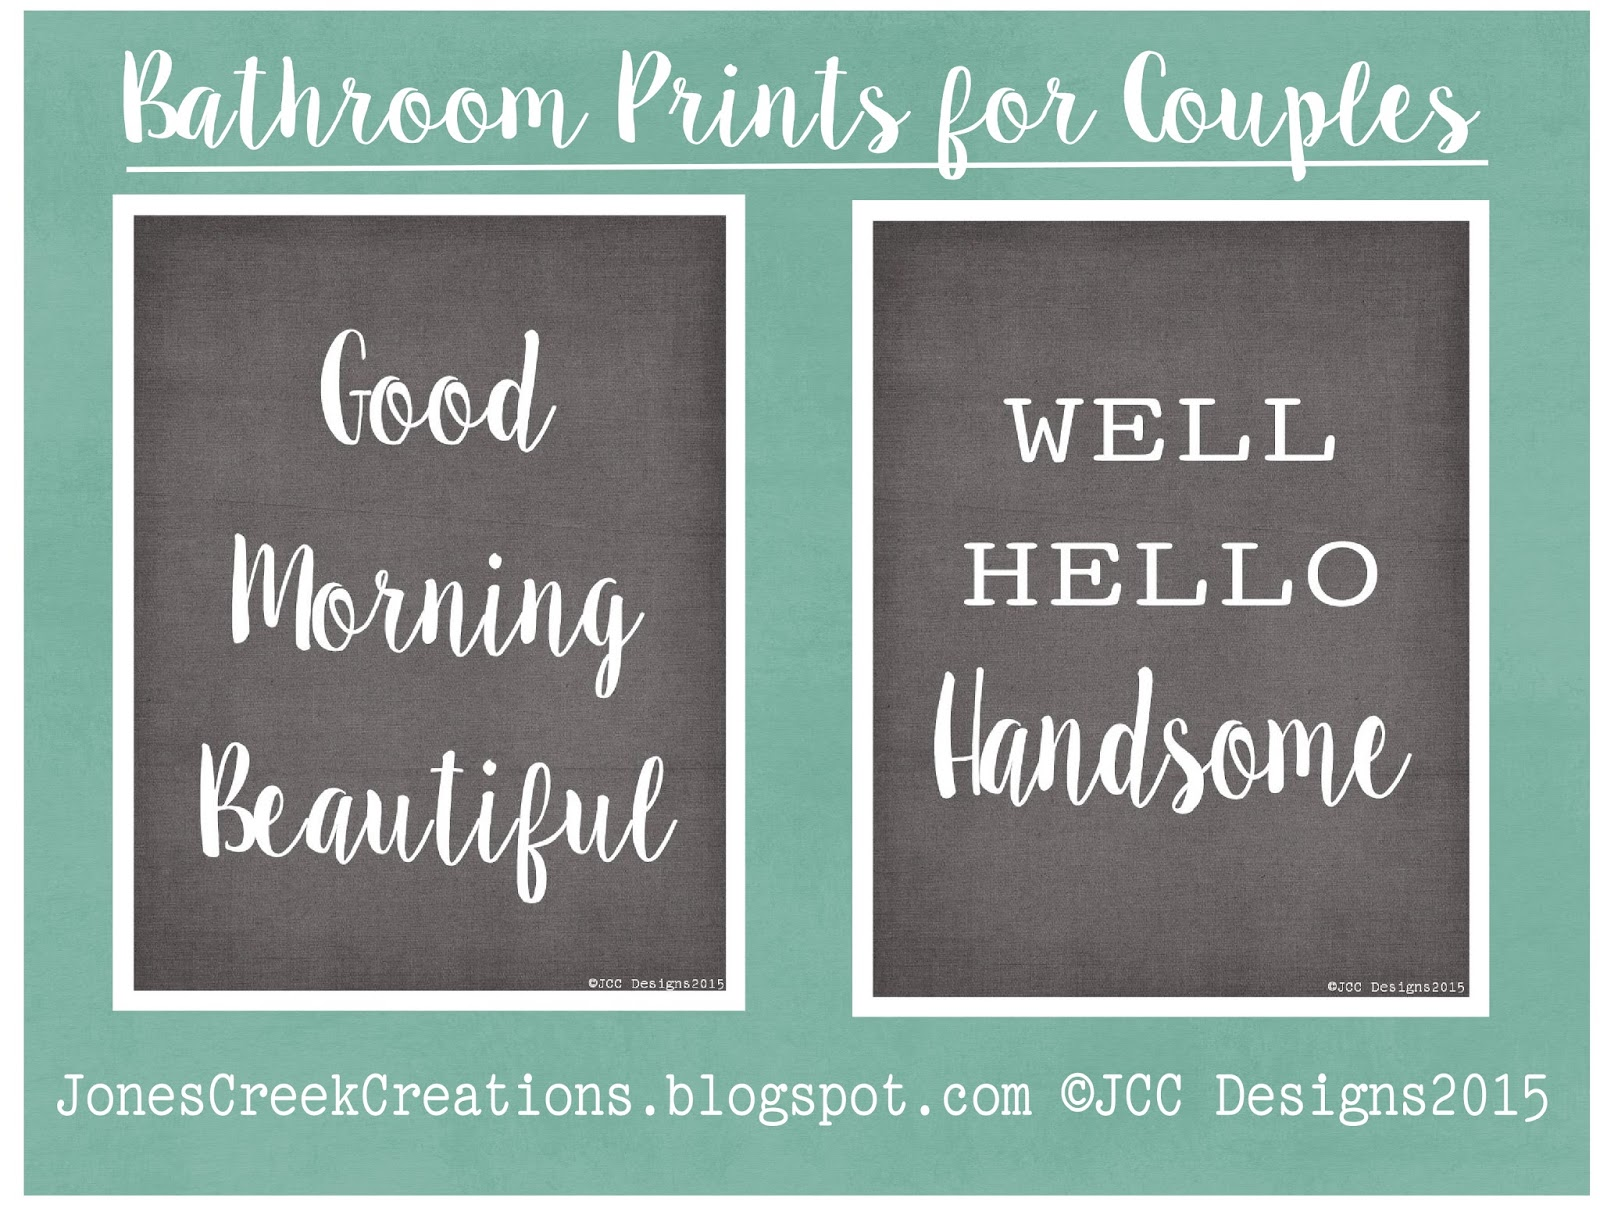 jones creek creations: bathroom printables